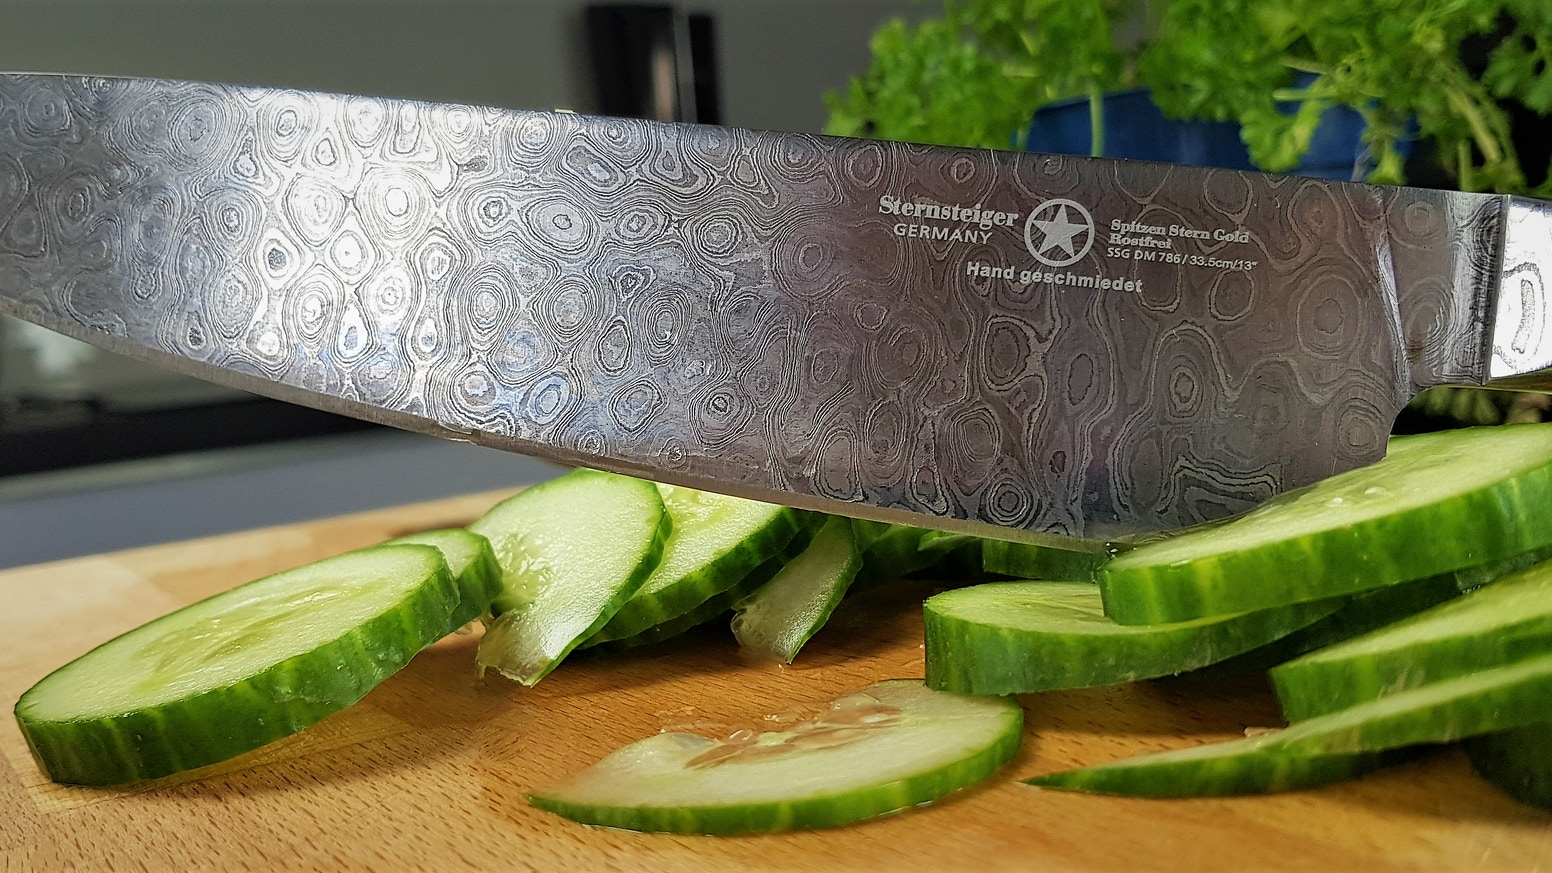 The most sharp and durable Damascus knife series we have ever made.